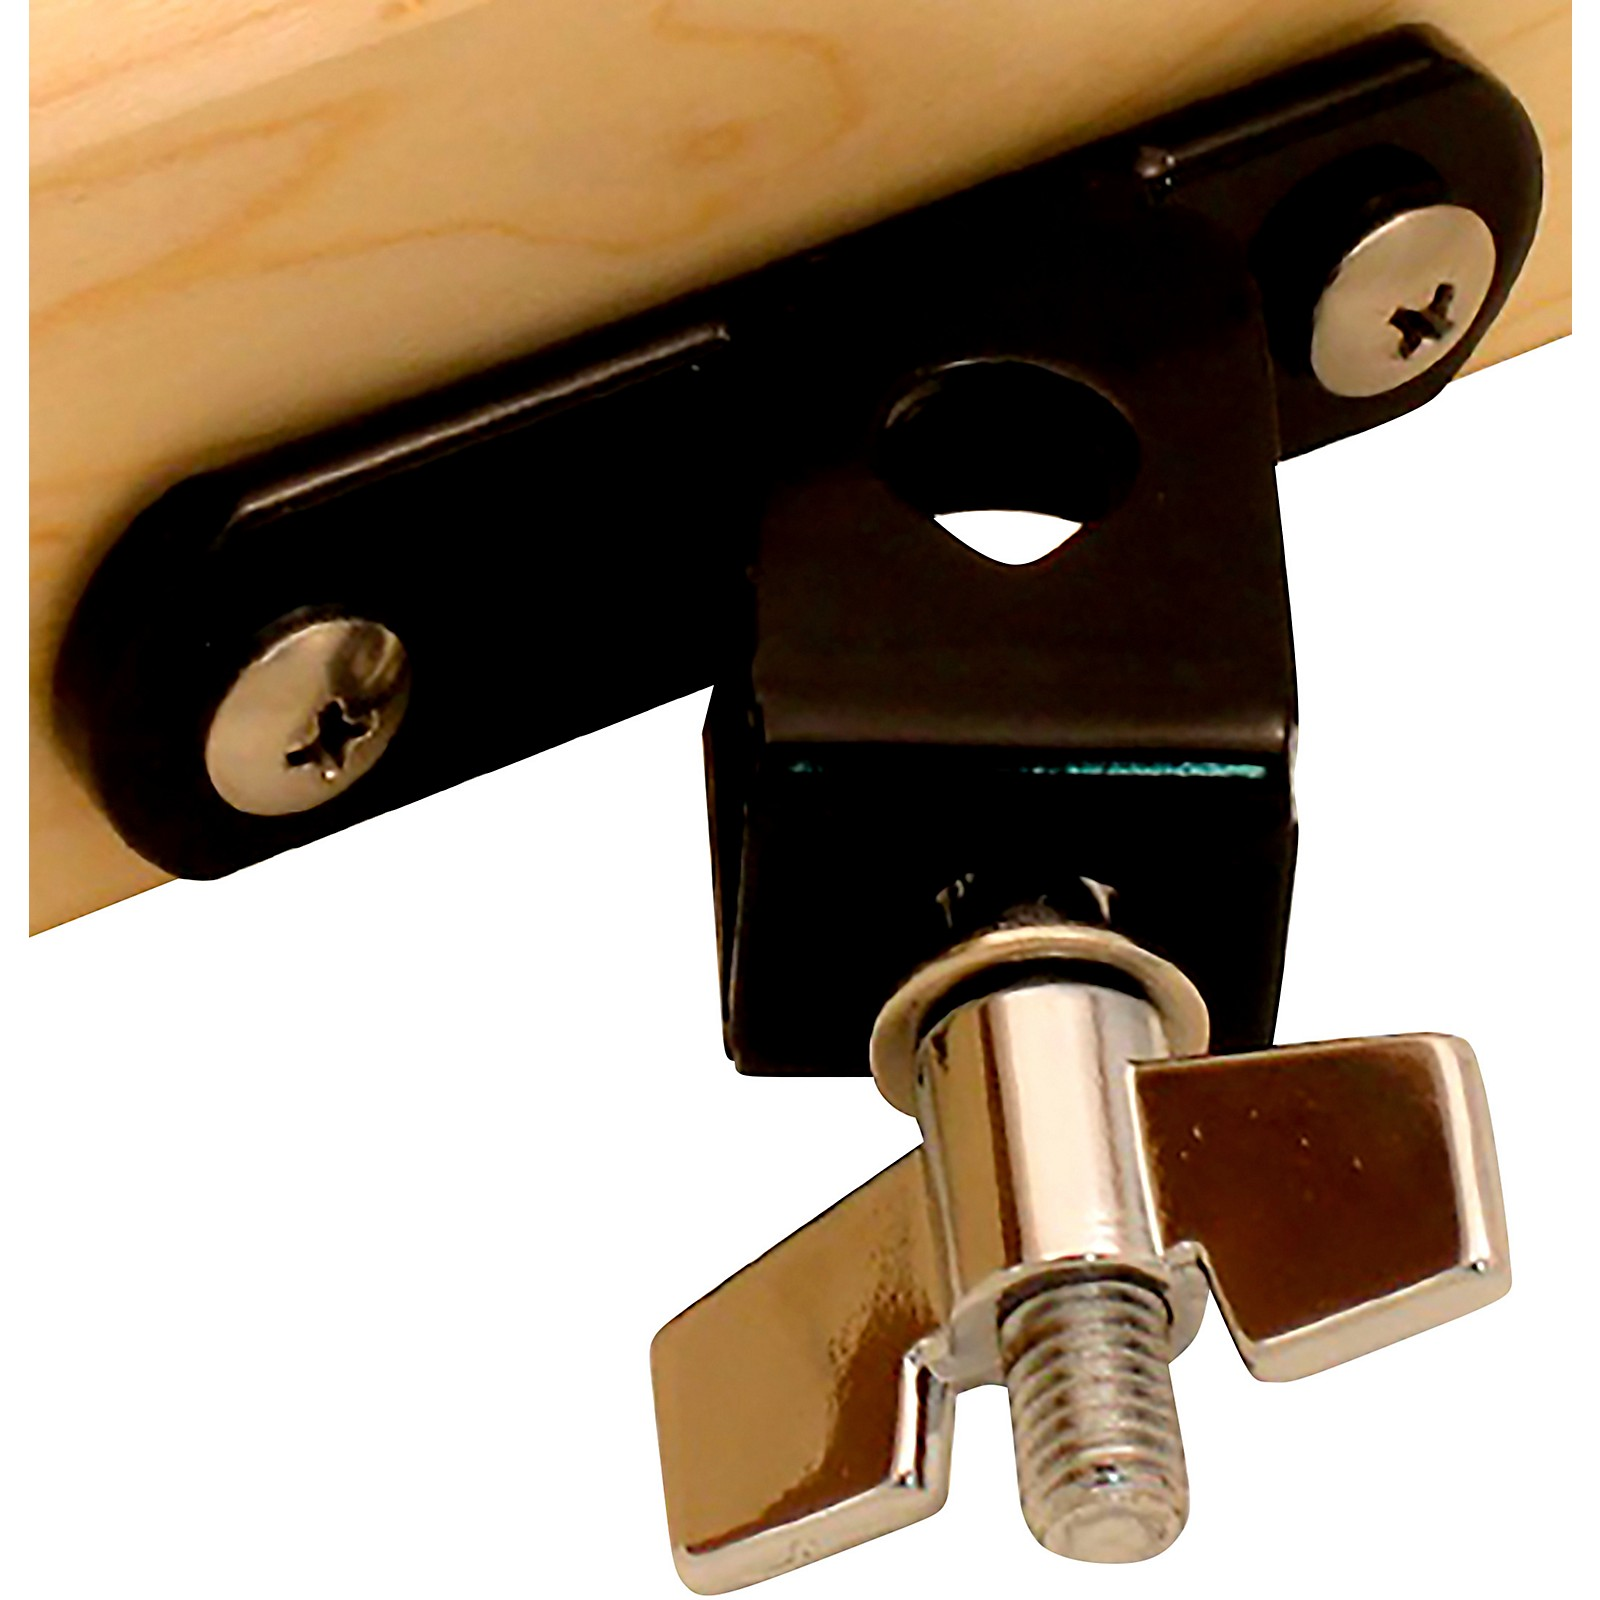 Black Swamp Percussion Woodblock Multiclamp Mount Kit